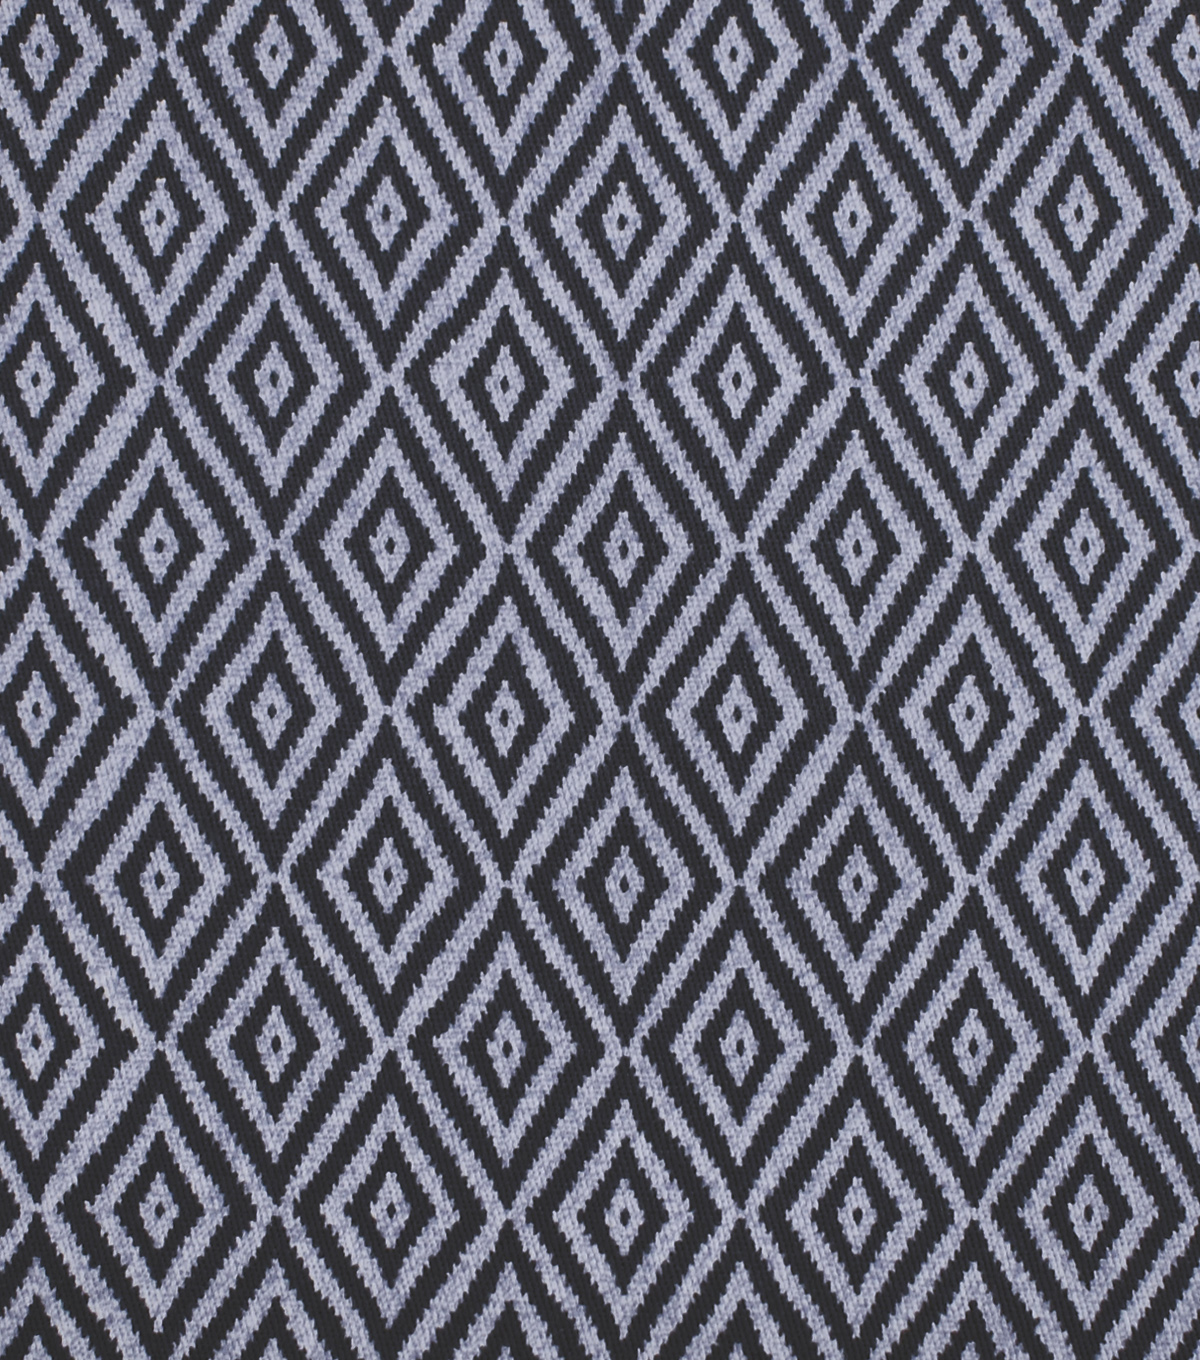 Sportswear Apparel Stretch Twill Fabric 57\u0027\u0027-Navy Geometric Diamond